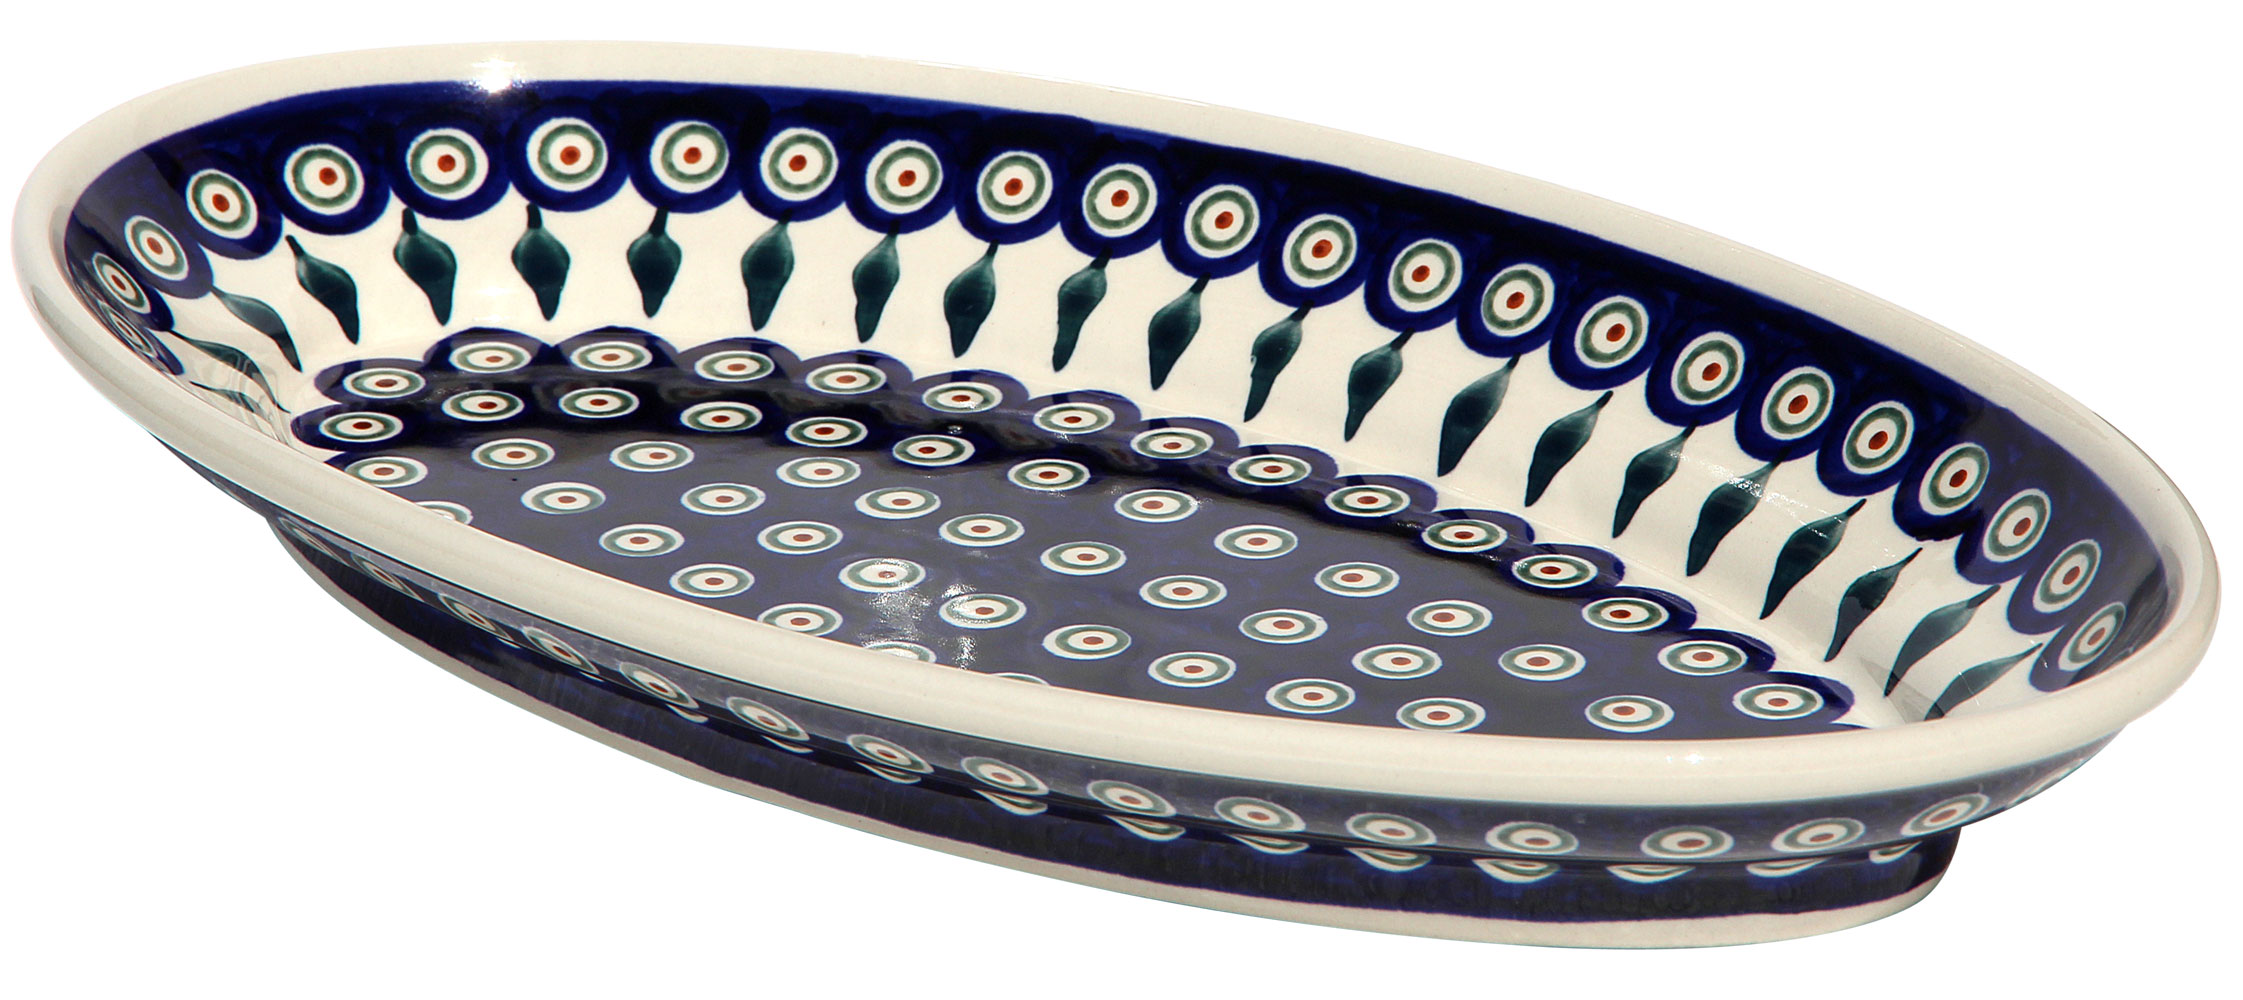 Polish Pottery Large Oval Serving Dish, Peacock Classic Design 56